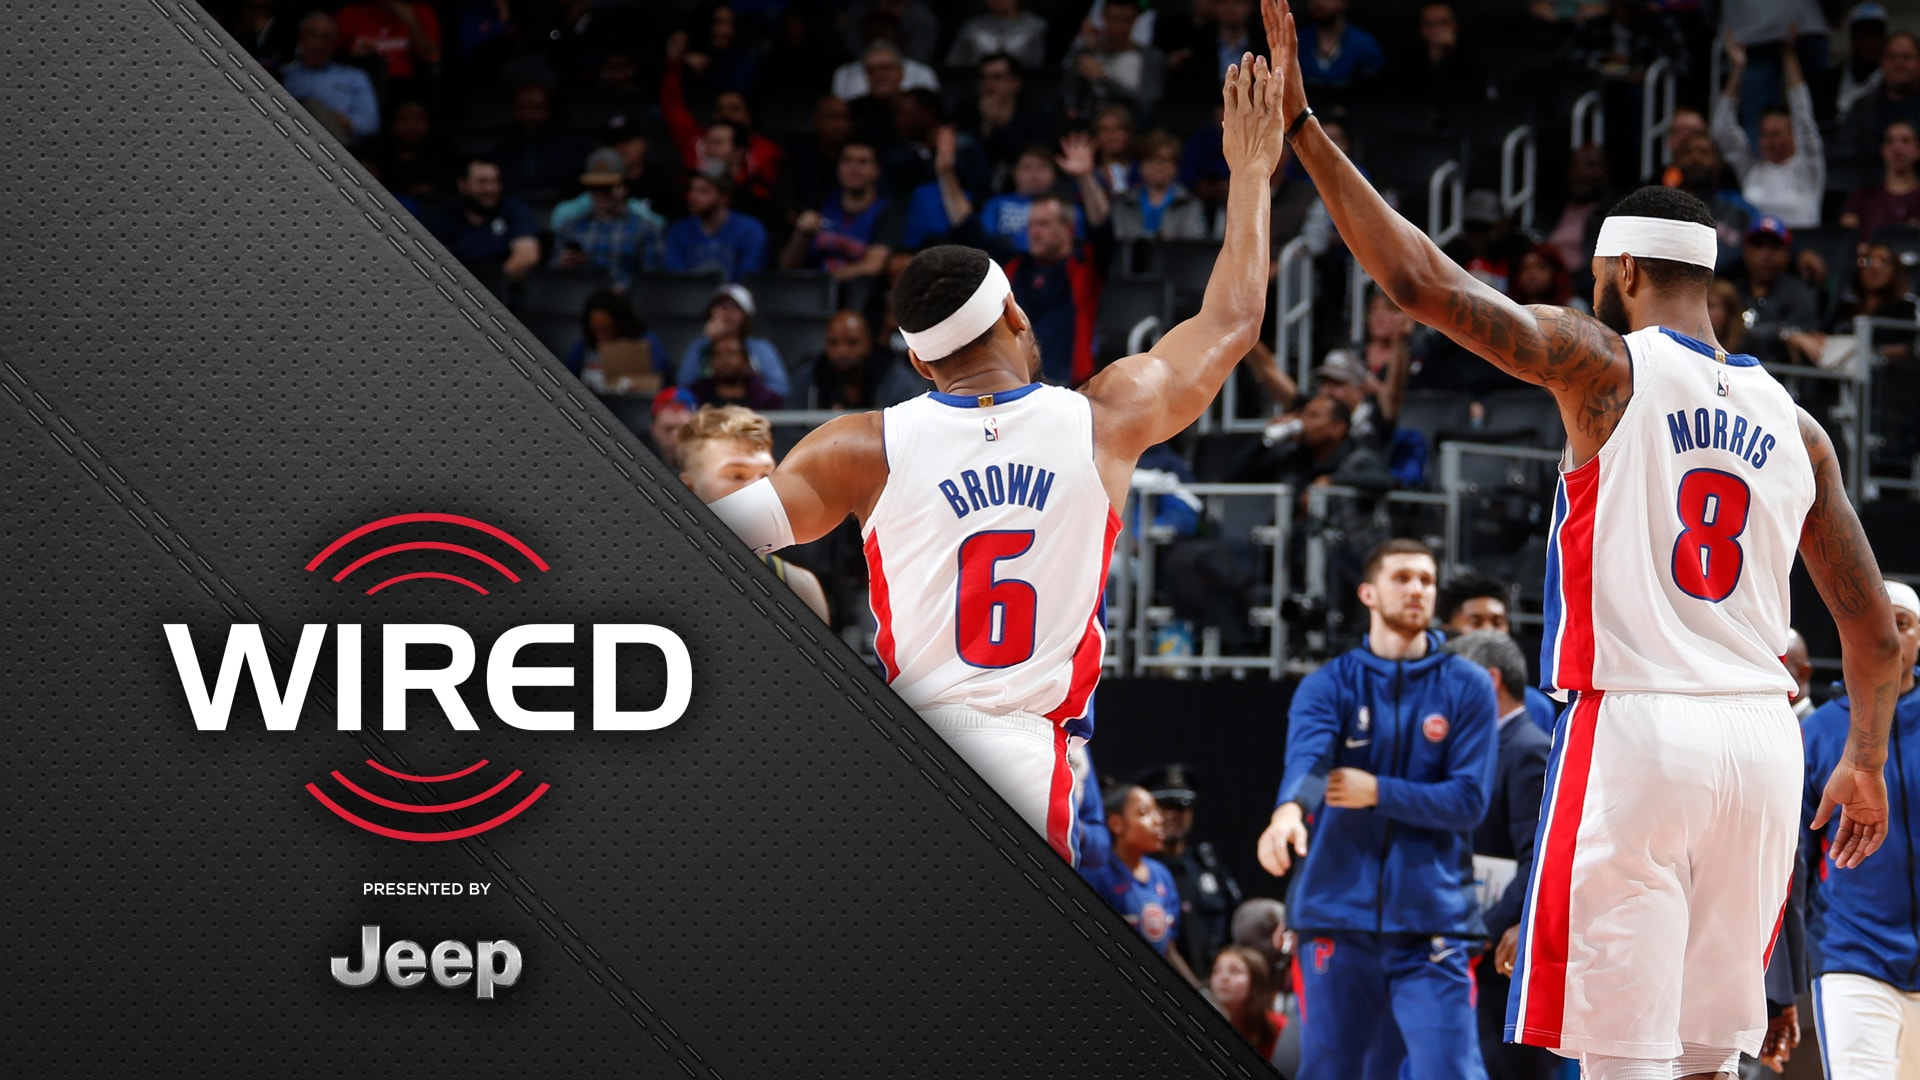 Wired, presented by Jeep: Pistons vs Pacers